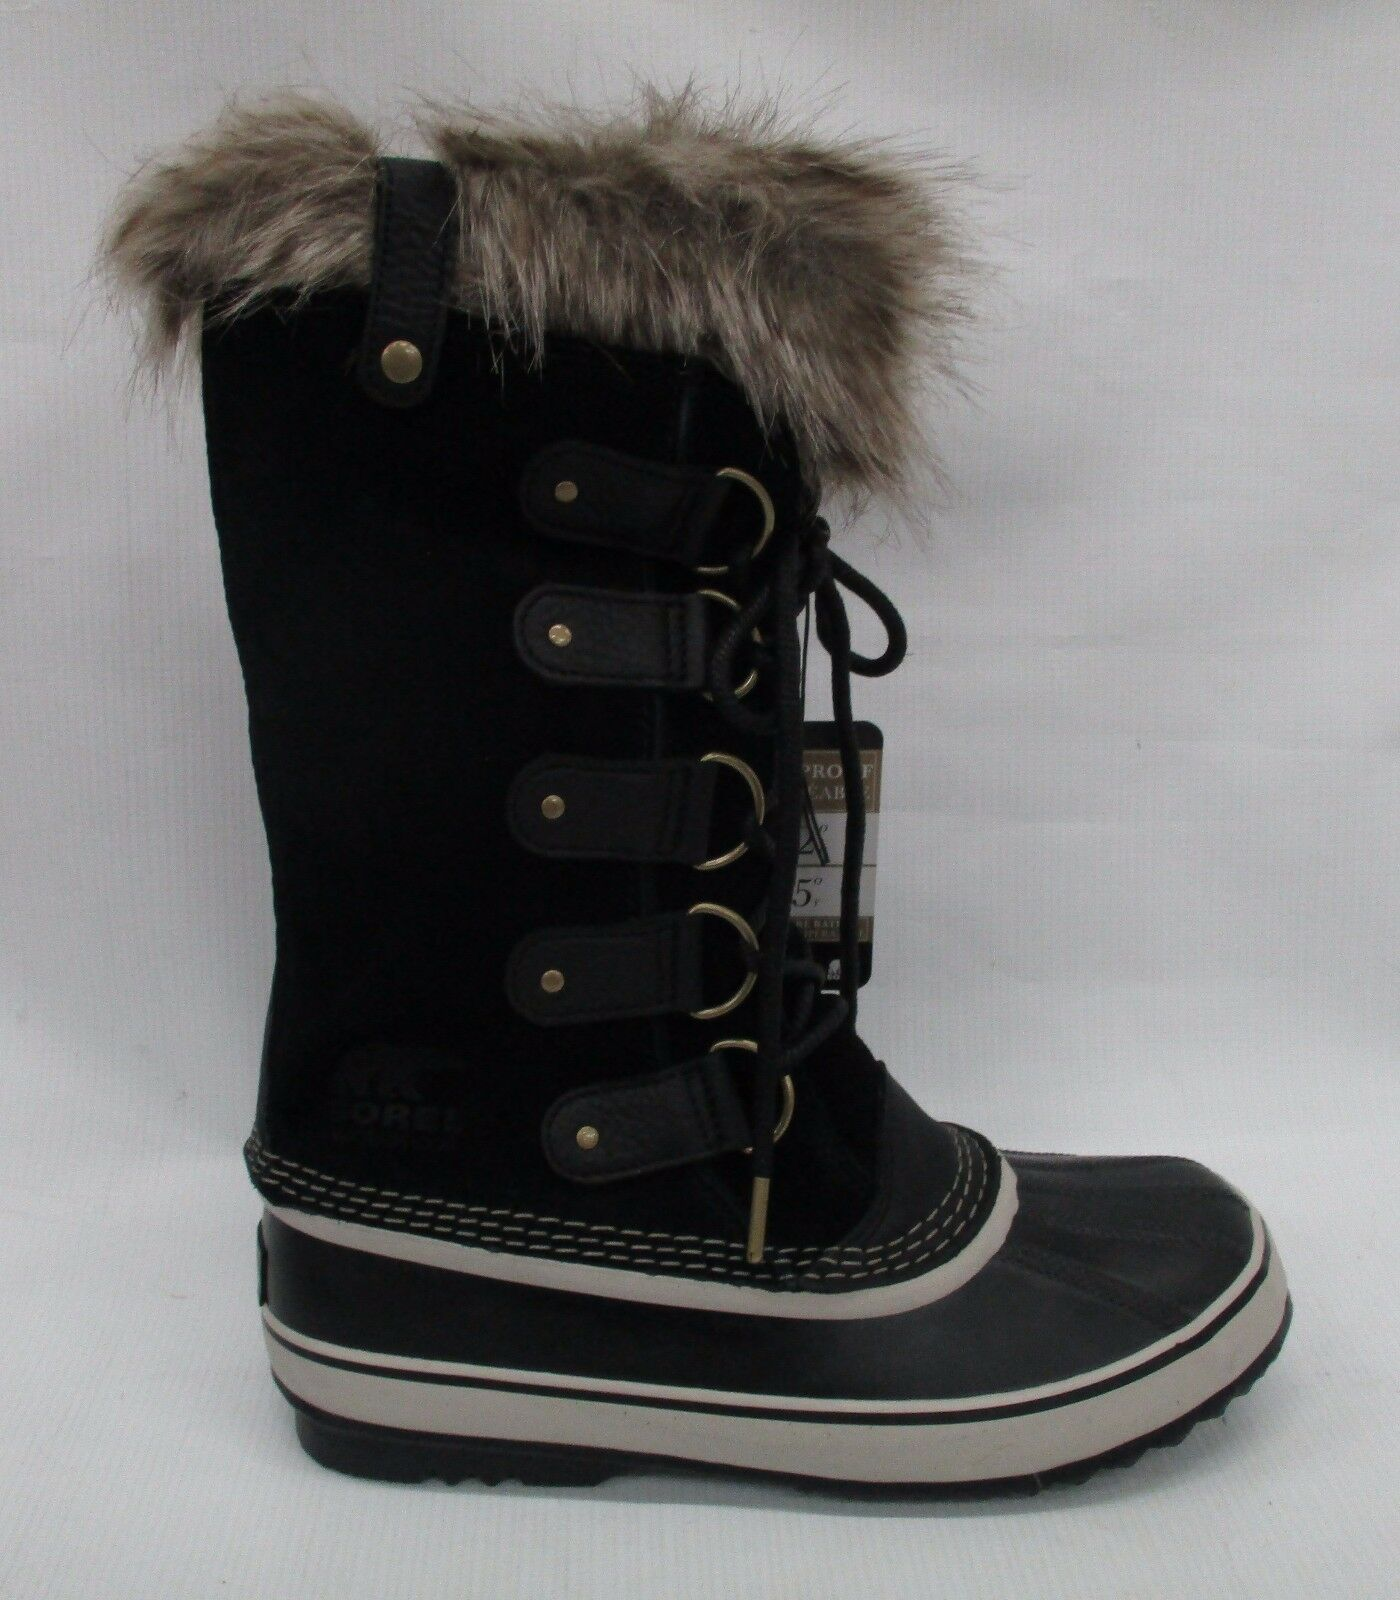 Sorel Womens Joan of Arctic Boots 1708791 Black/Stone Size 6